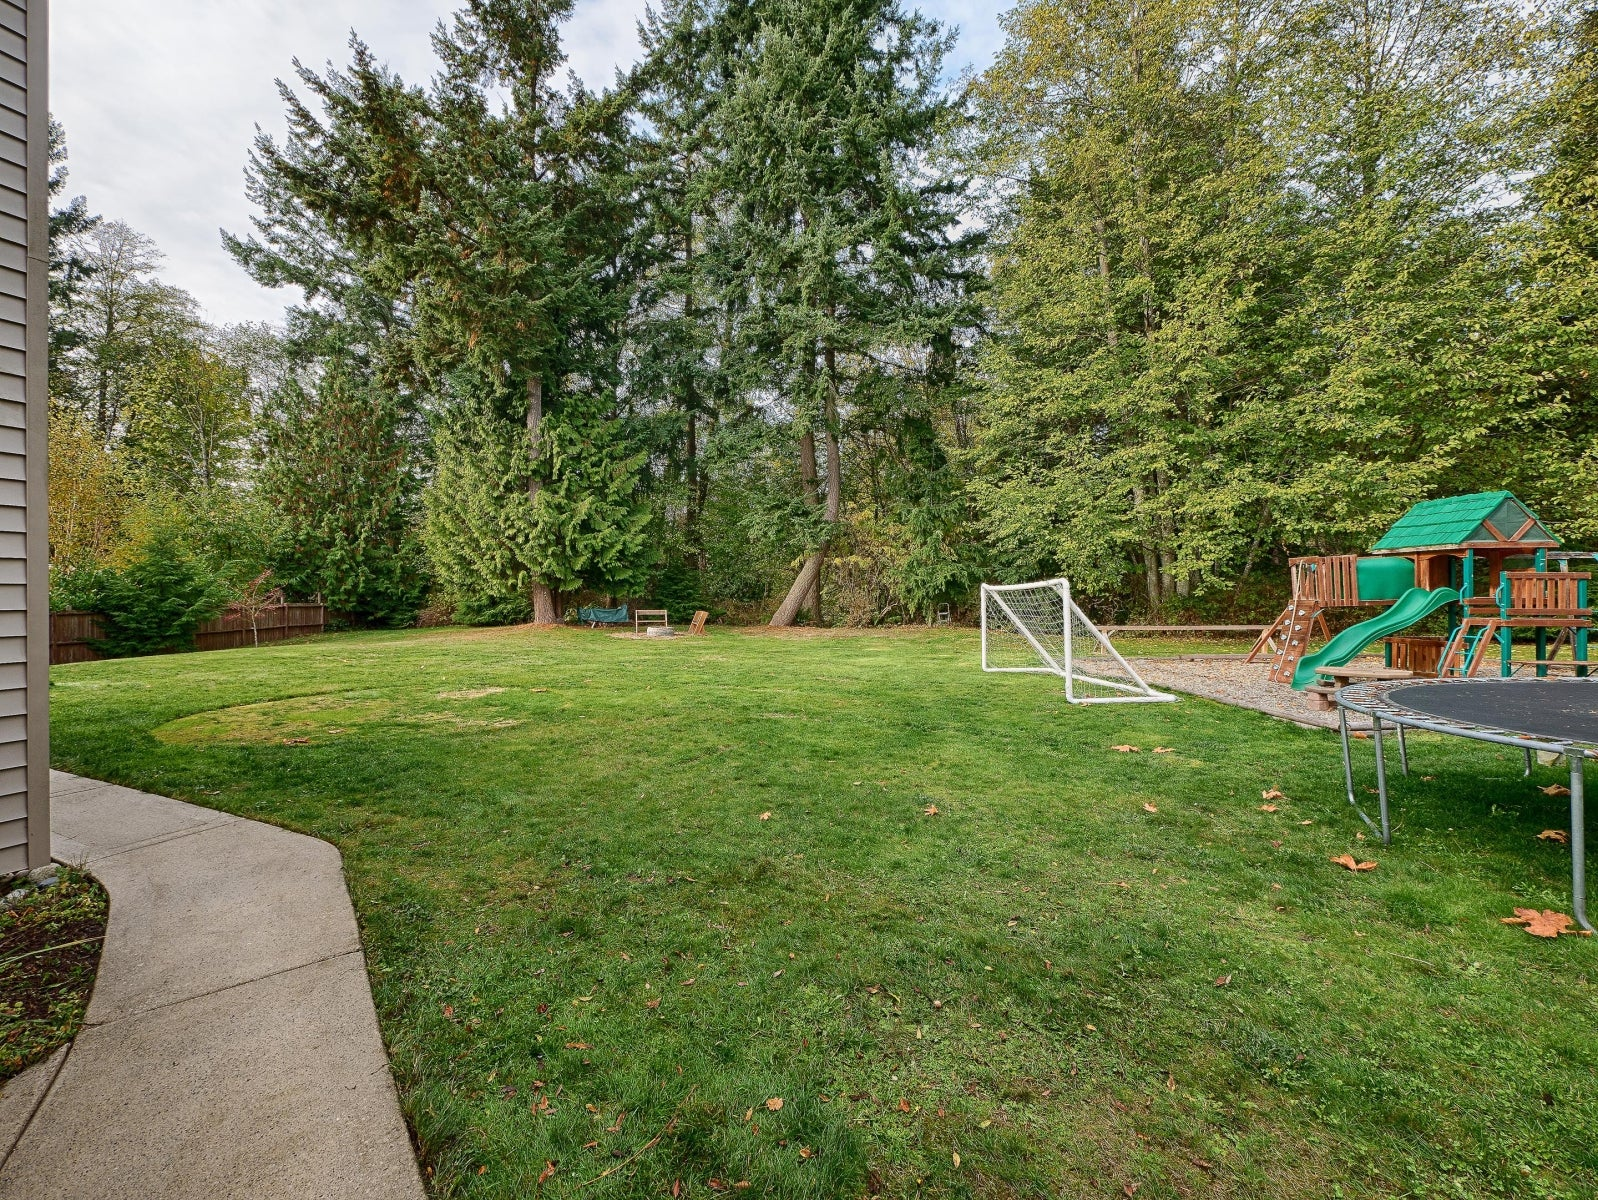 1474 SUNSET PLACE - Gibsons & Area House/Single Family for sale, 4 Bedrooms (R2220208) #26